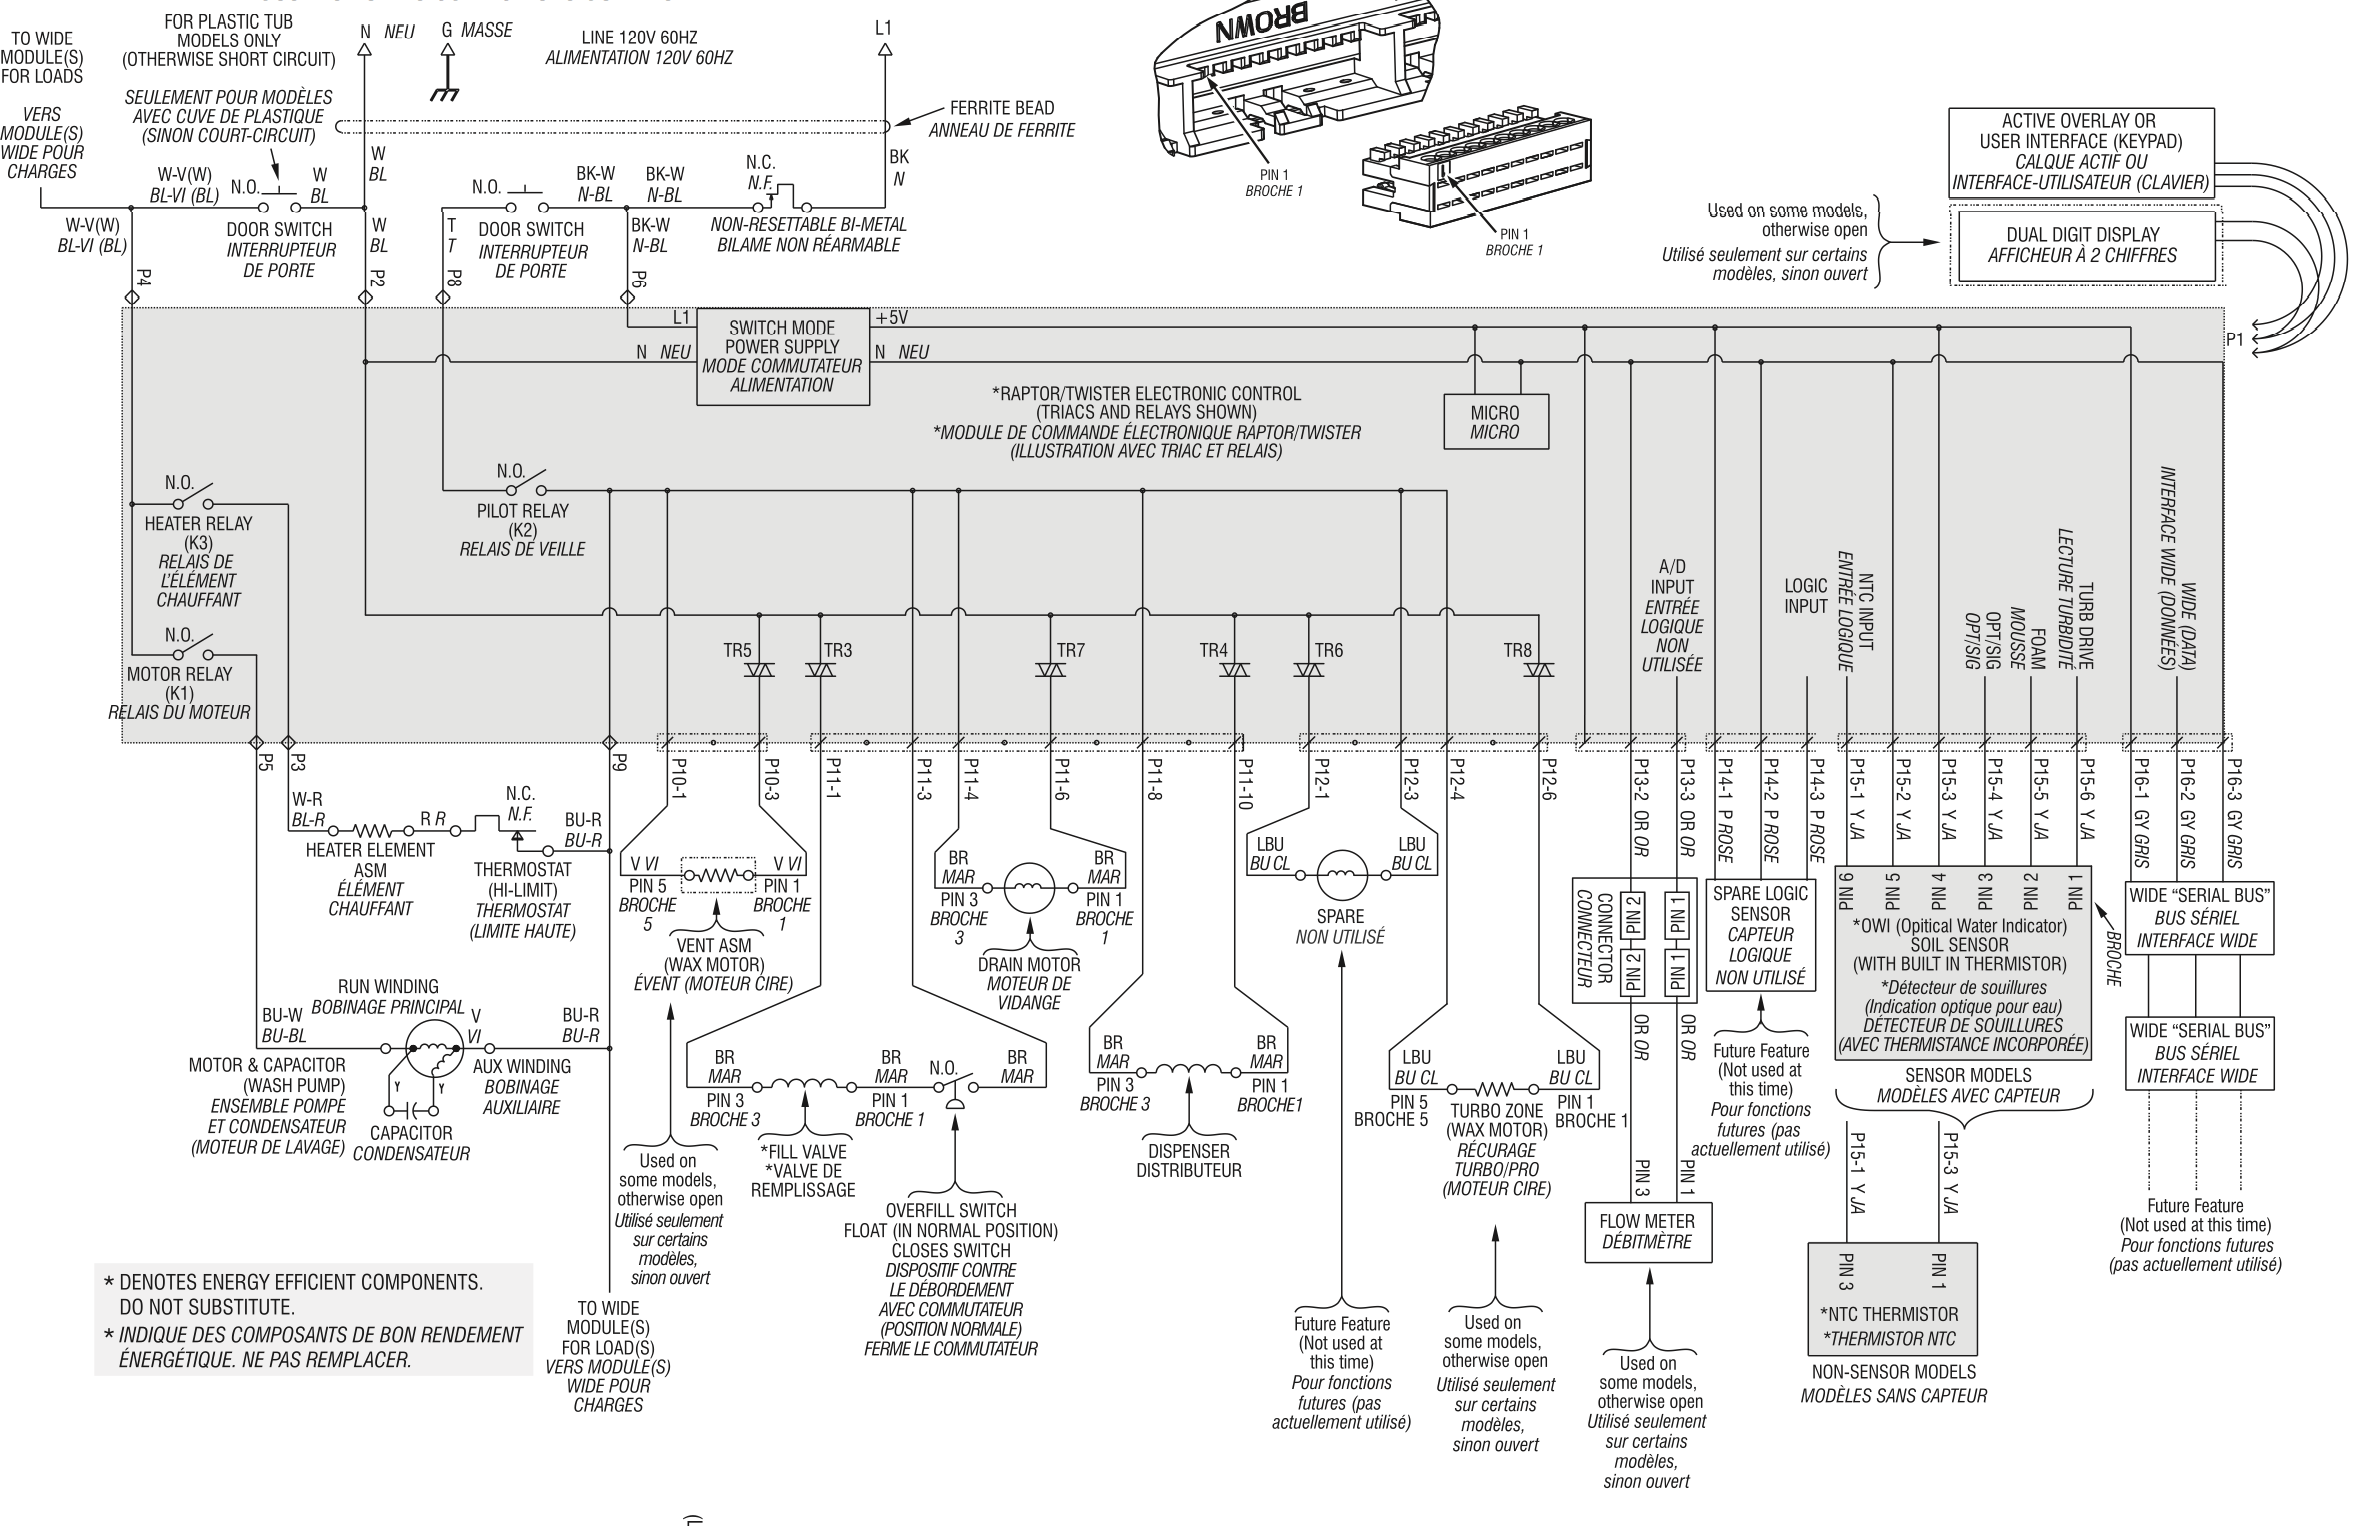 i need a wiring diagram for a mod mdbh979awb2 dishwasher it